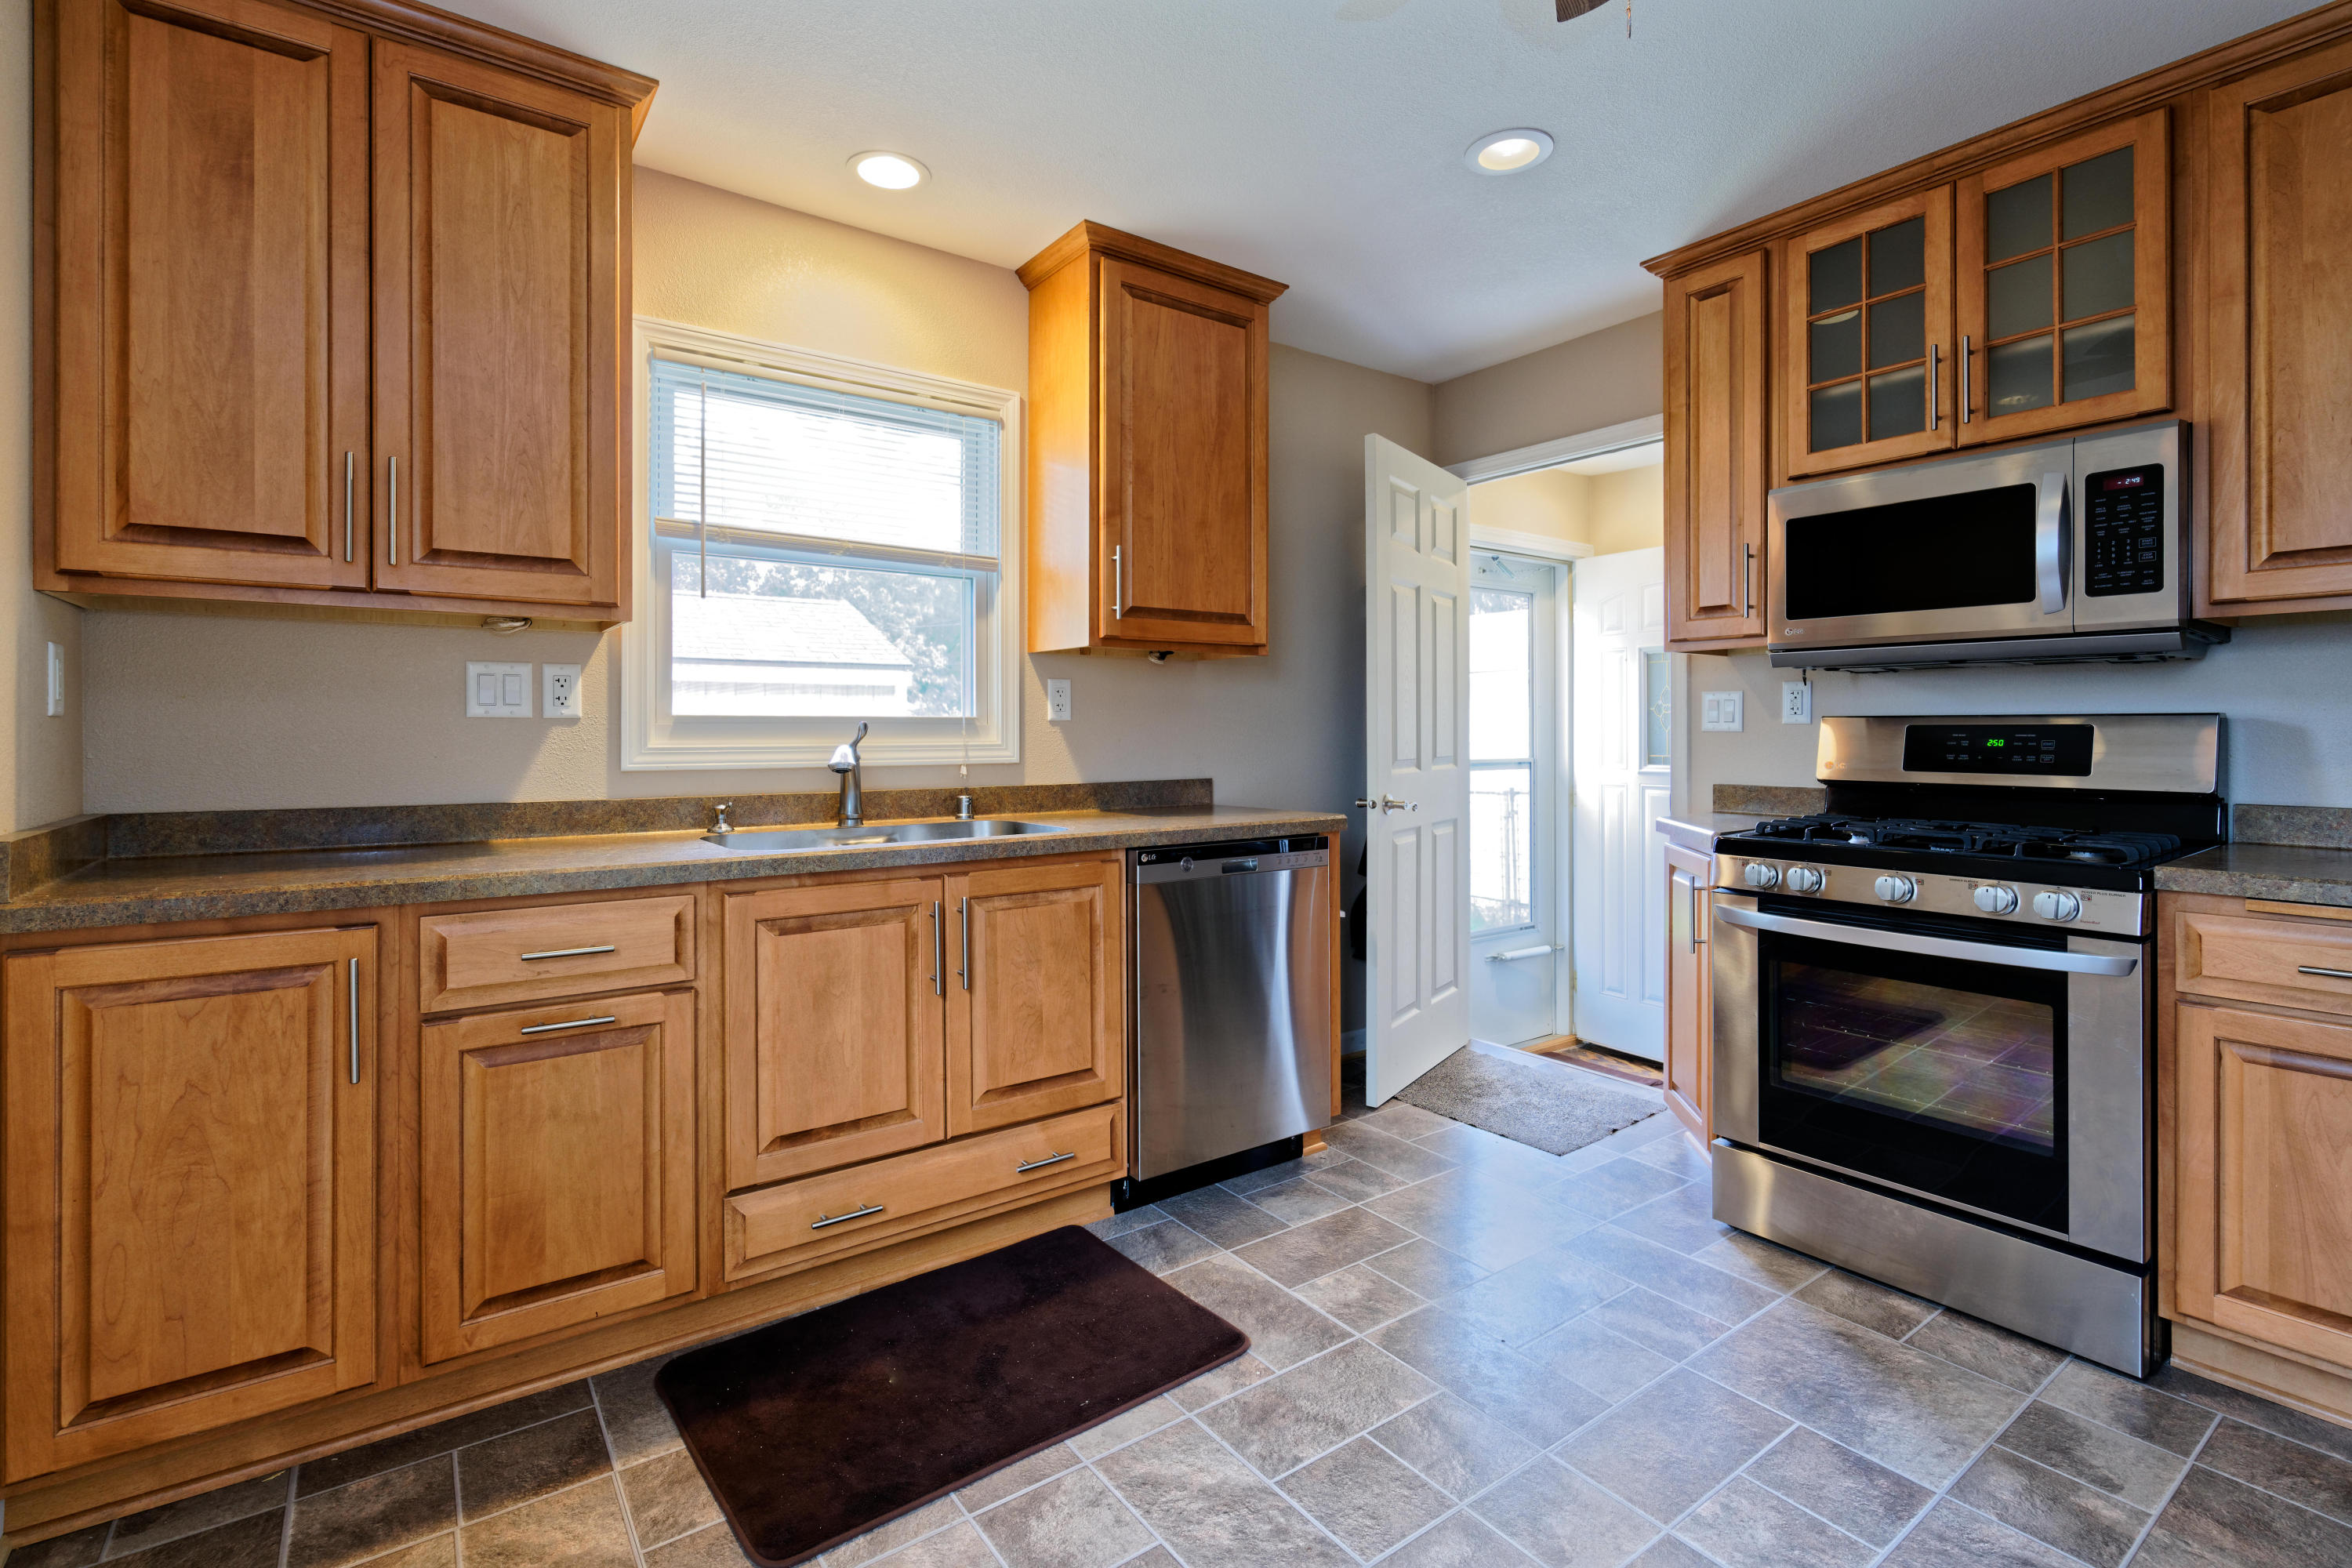 3030 62ND ST, Milwaukee, Wisconsin 53219, 4 Bedrooms Bedrooms, 7 Rooms Rooms,1 BathroomBathrooms,Single-Family,For Sale,62ND ST,1610641